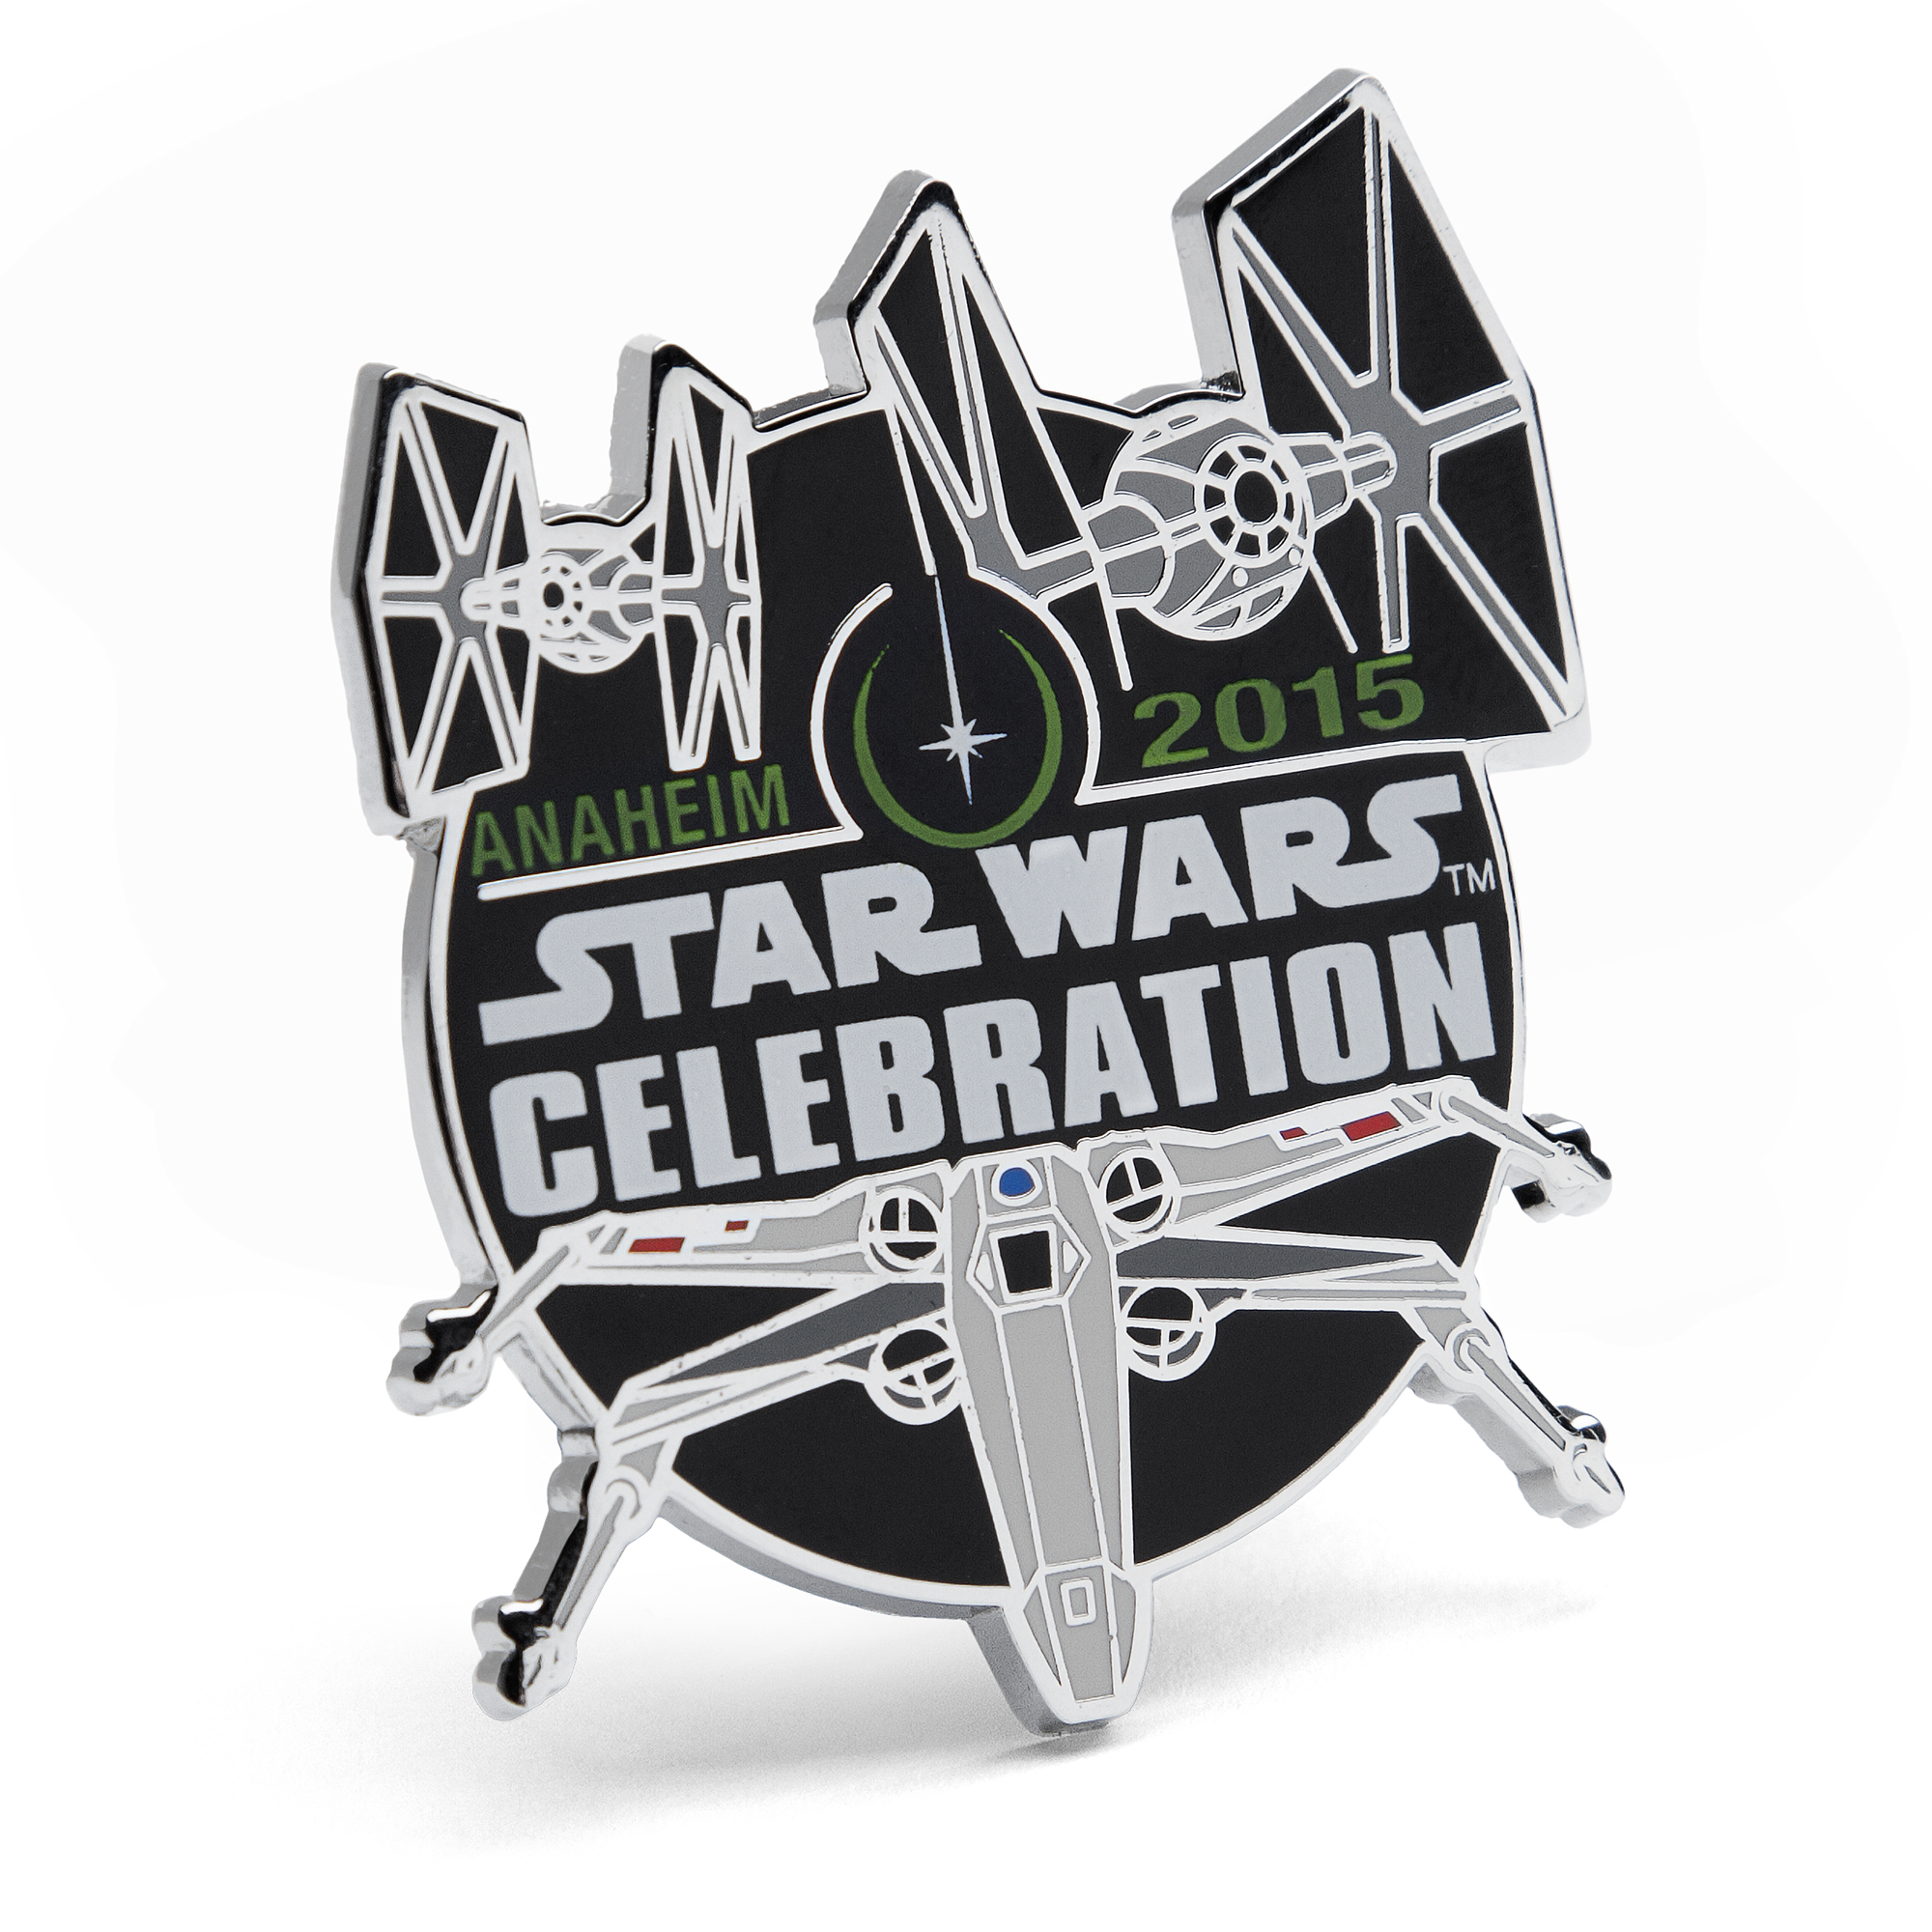 ThinkGeek Announces Star Wars Celebration Exclusives and Early Releases